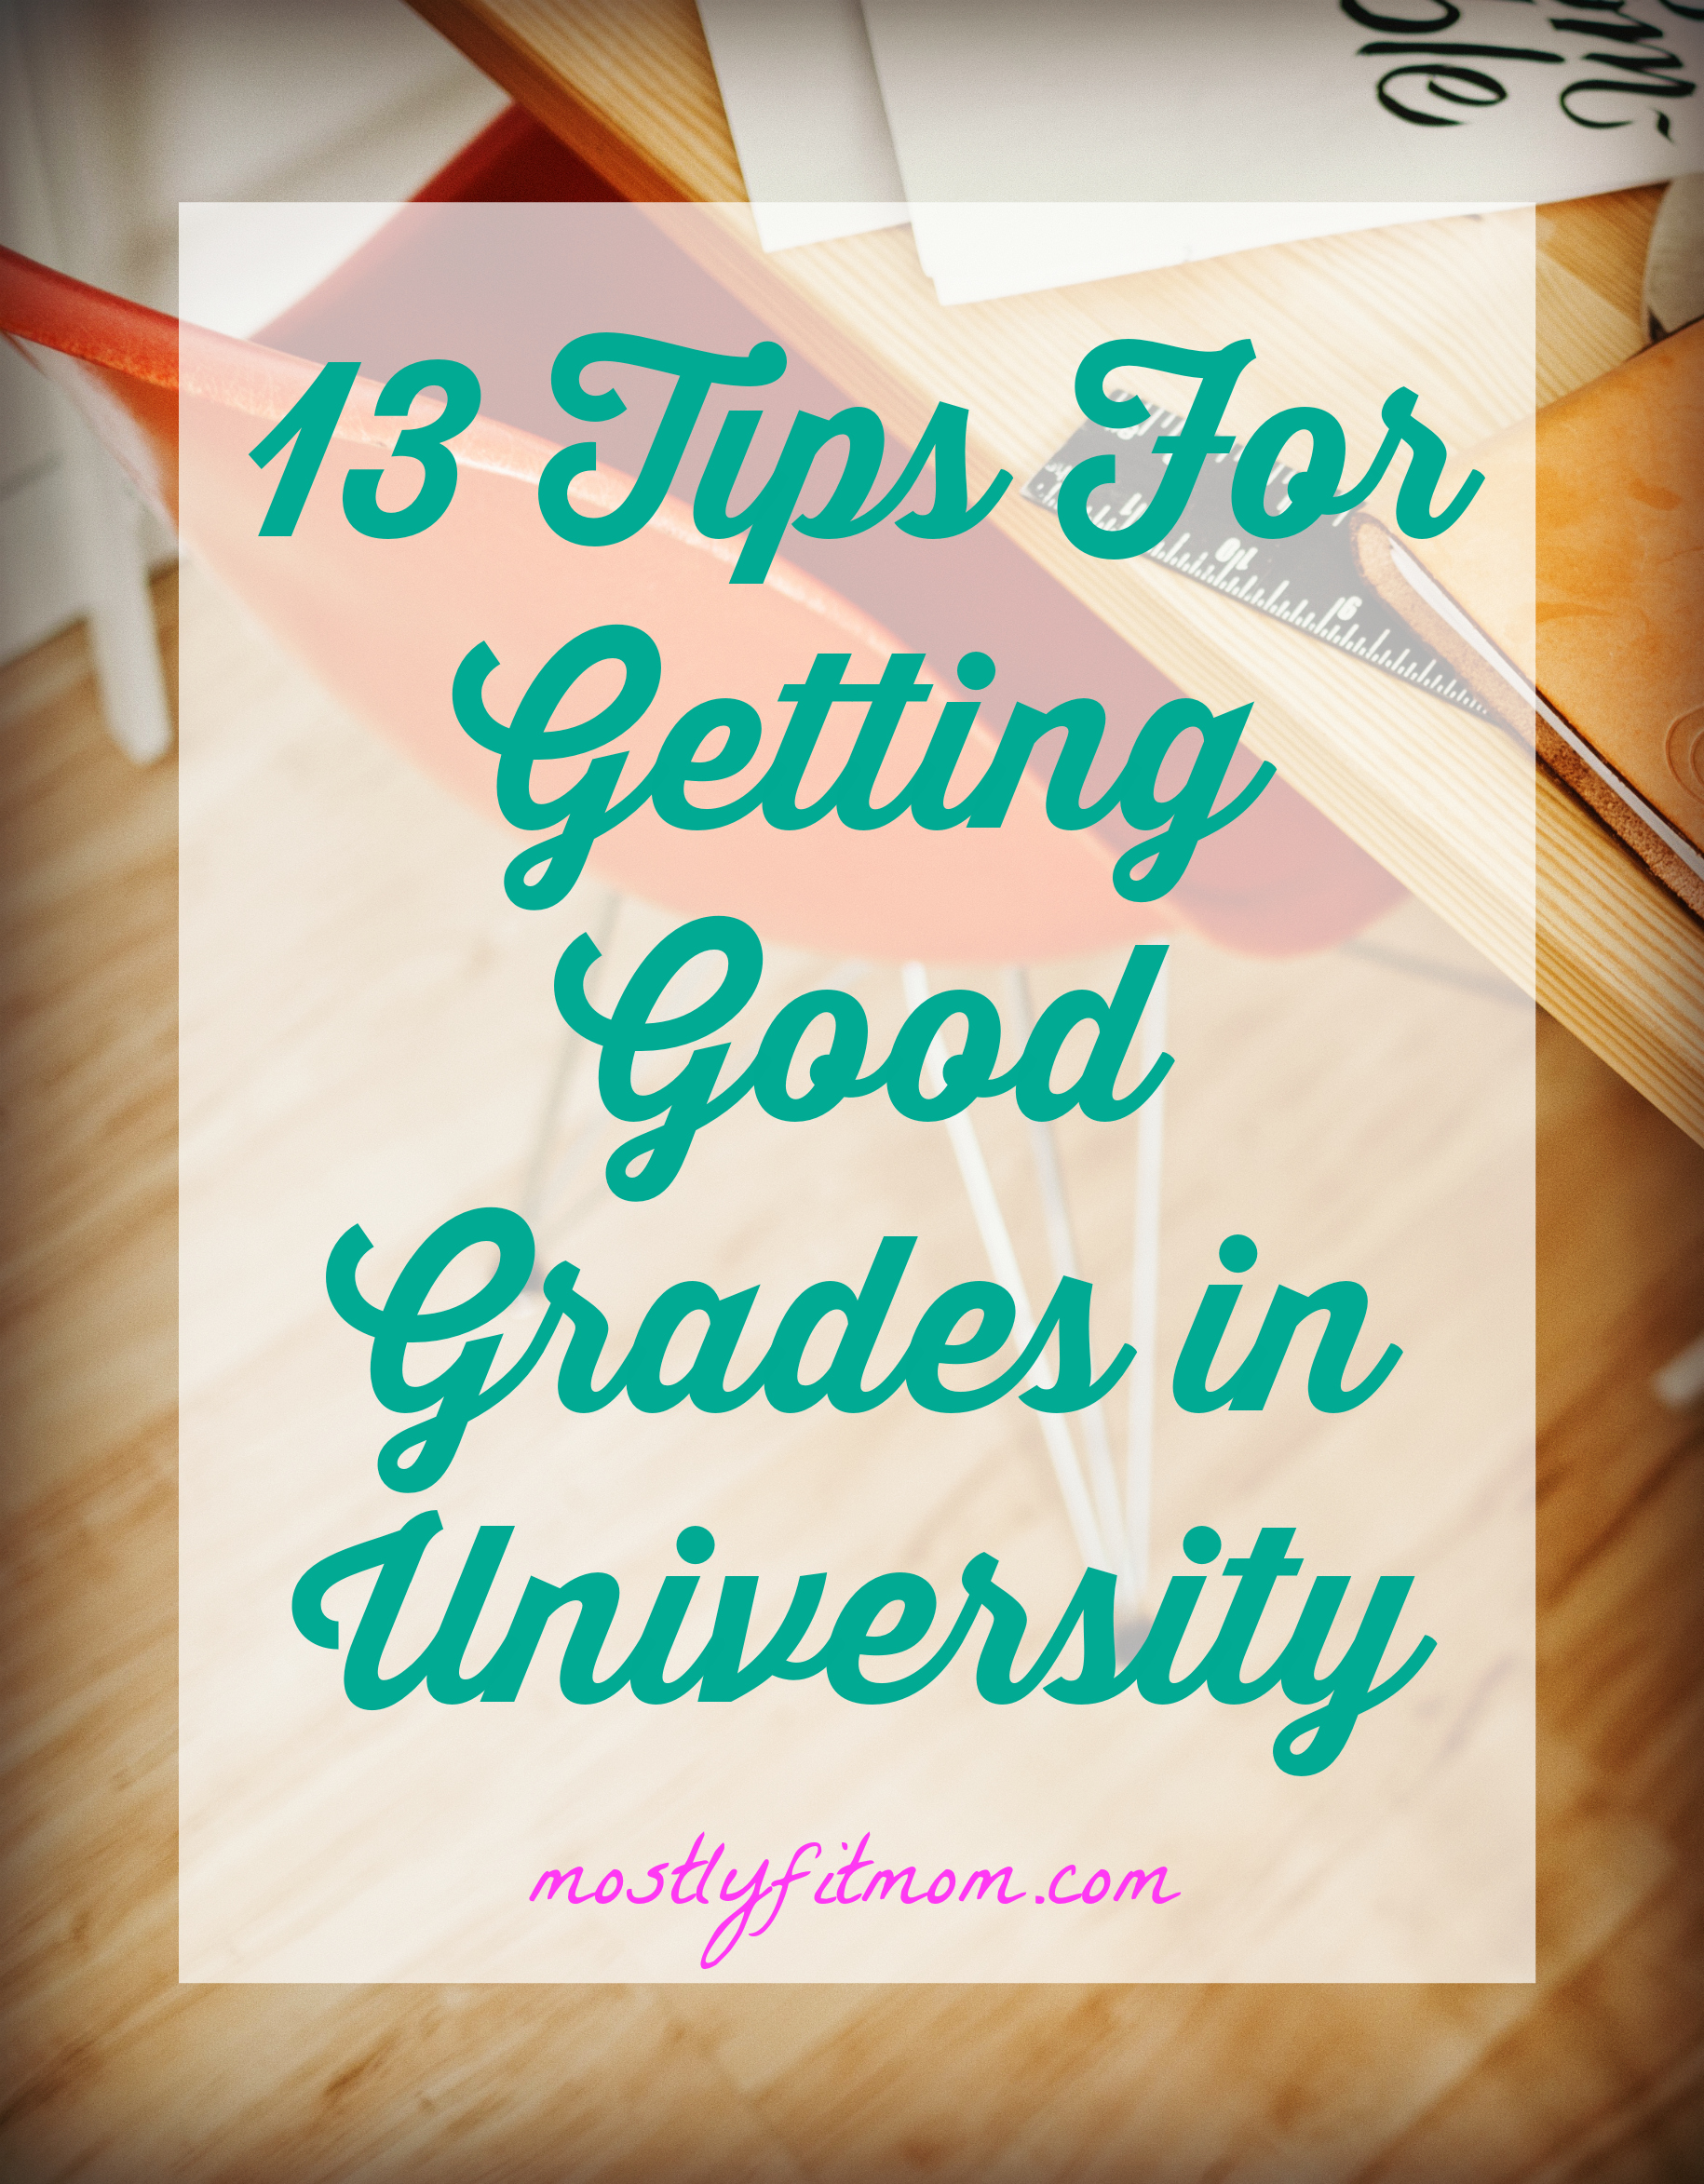 How to Get Good Grades at University advise